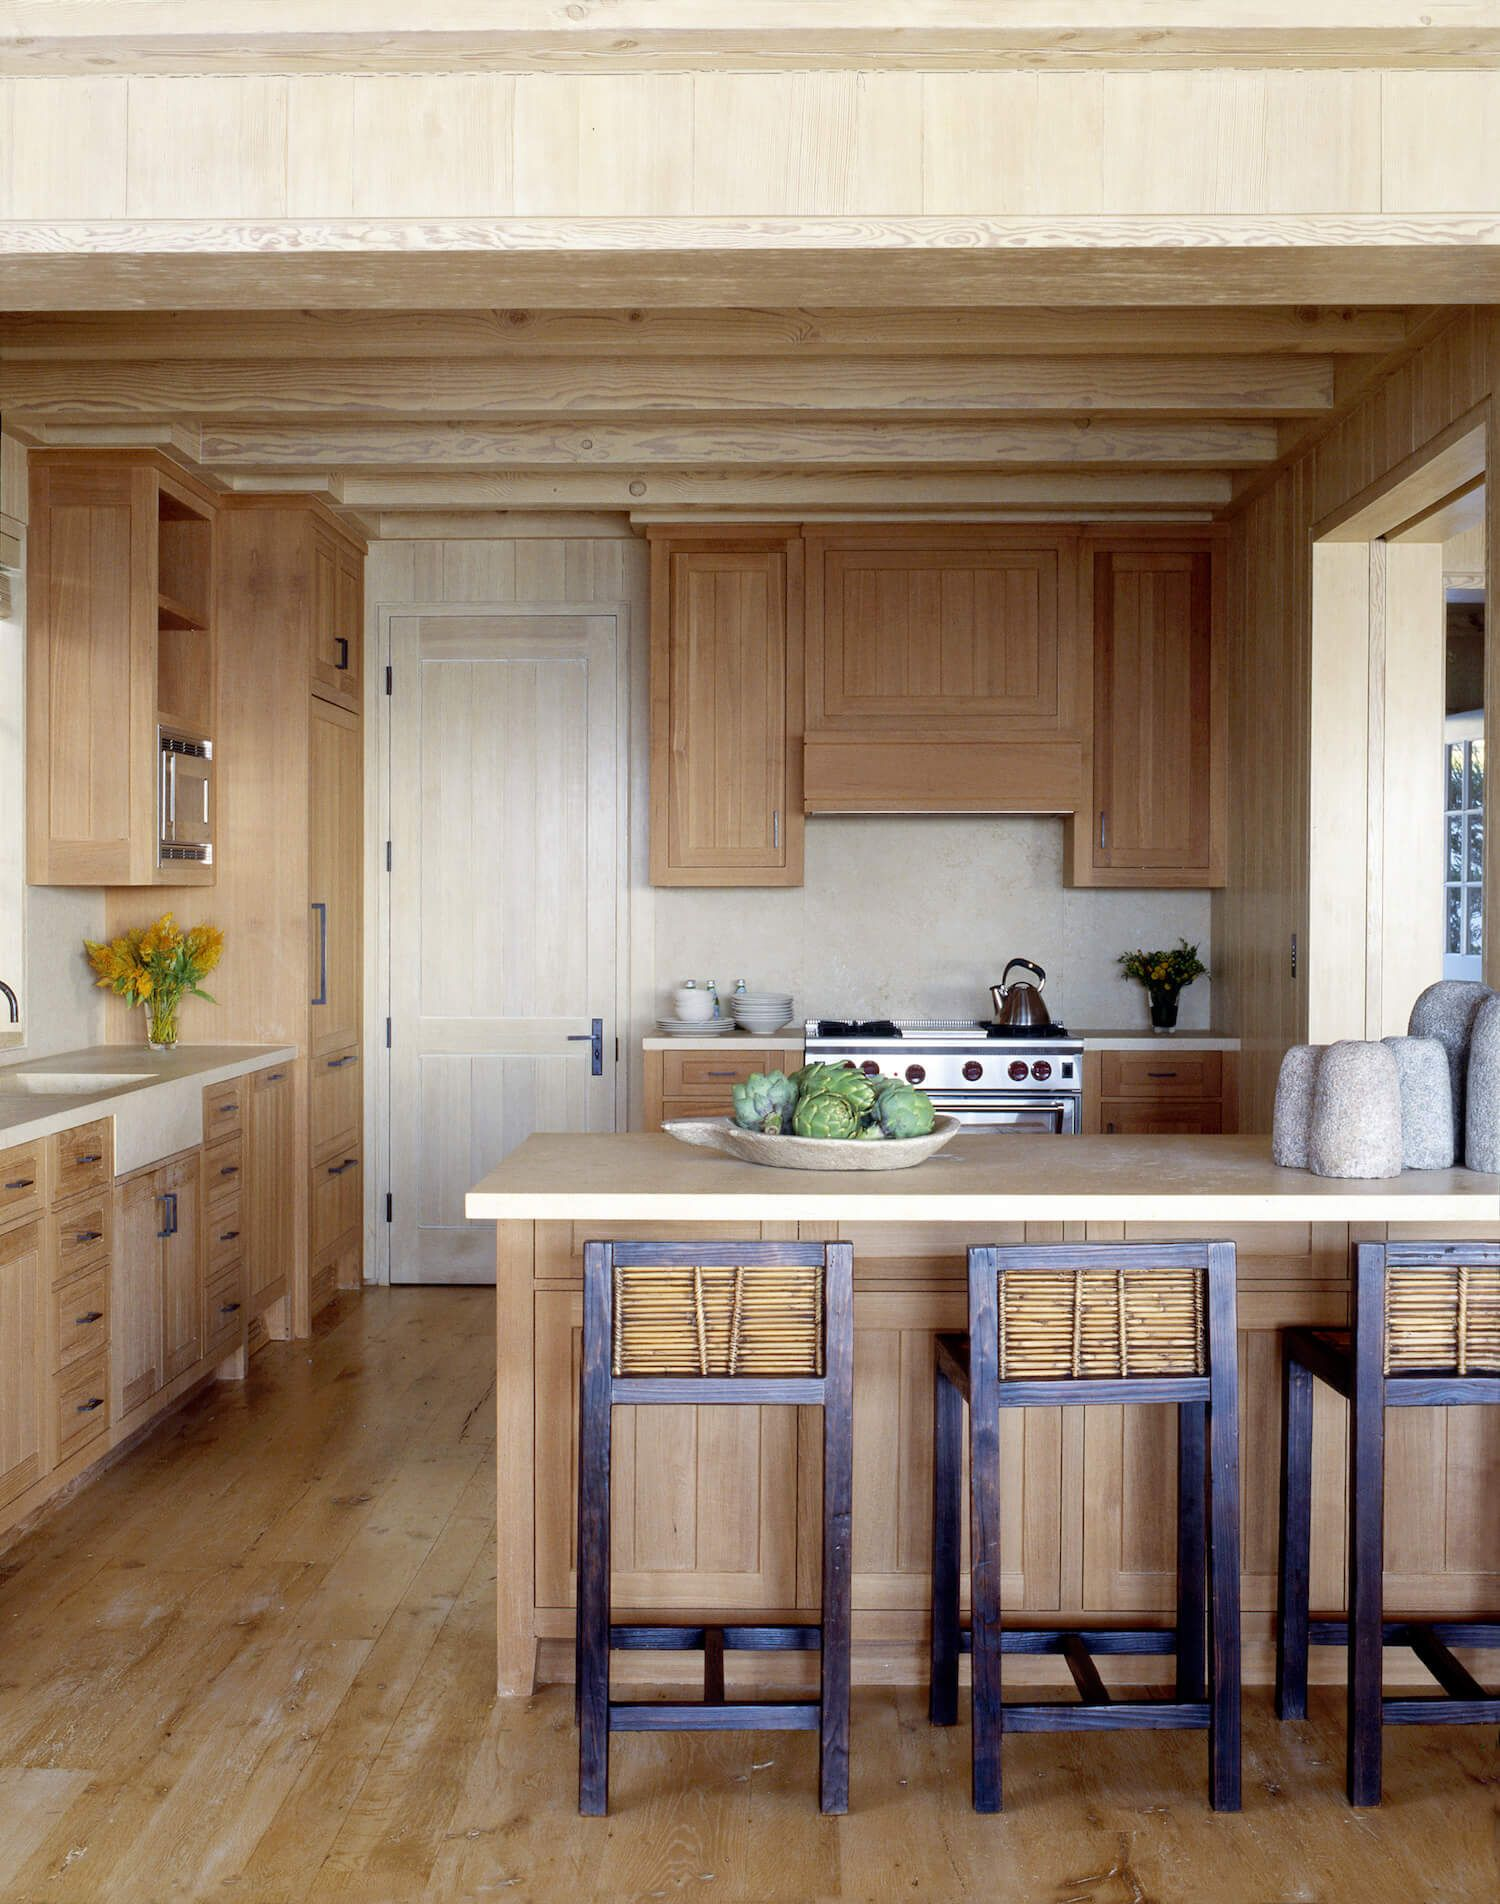 The Walls Ceiling Floor And Kitchen Cabinetry Are Lined With A Combination Of Reclaimed Washed White Oak Pale Wood To Absorb Malibu Sunlight